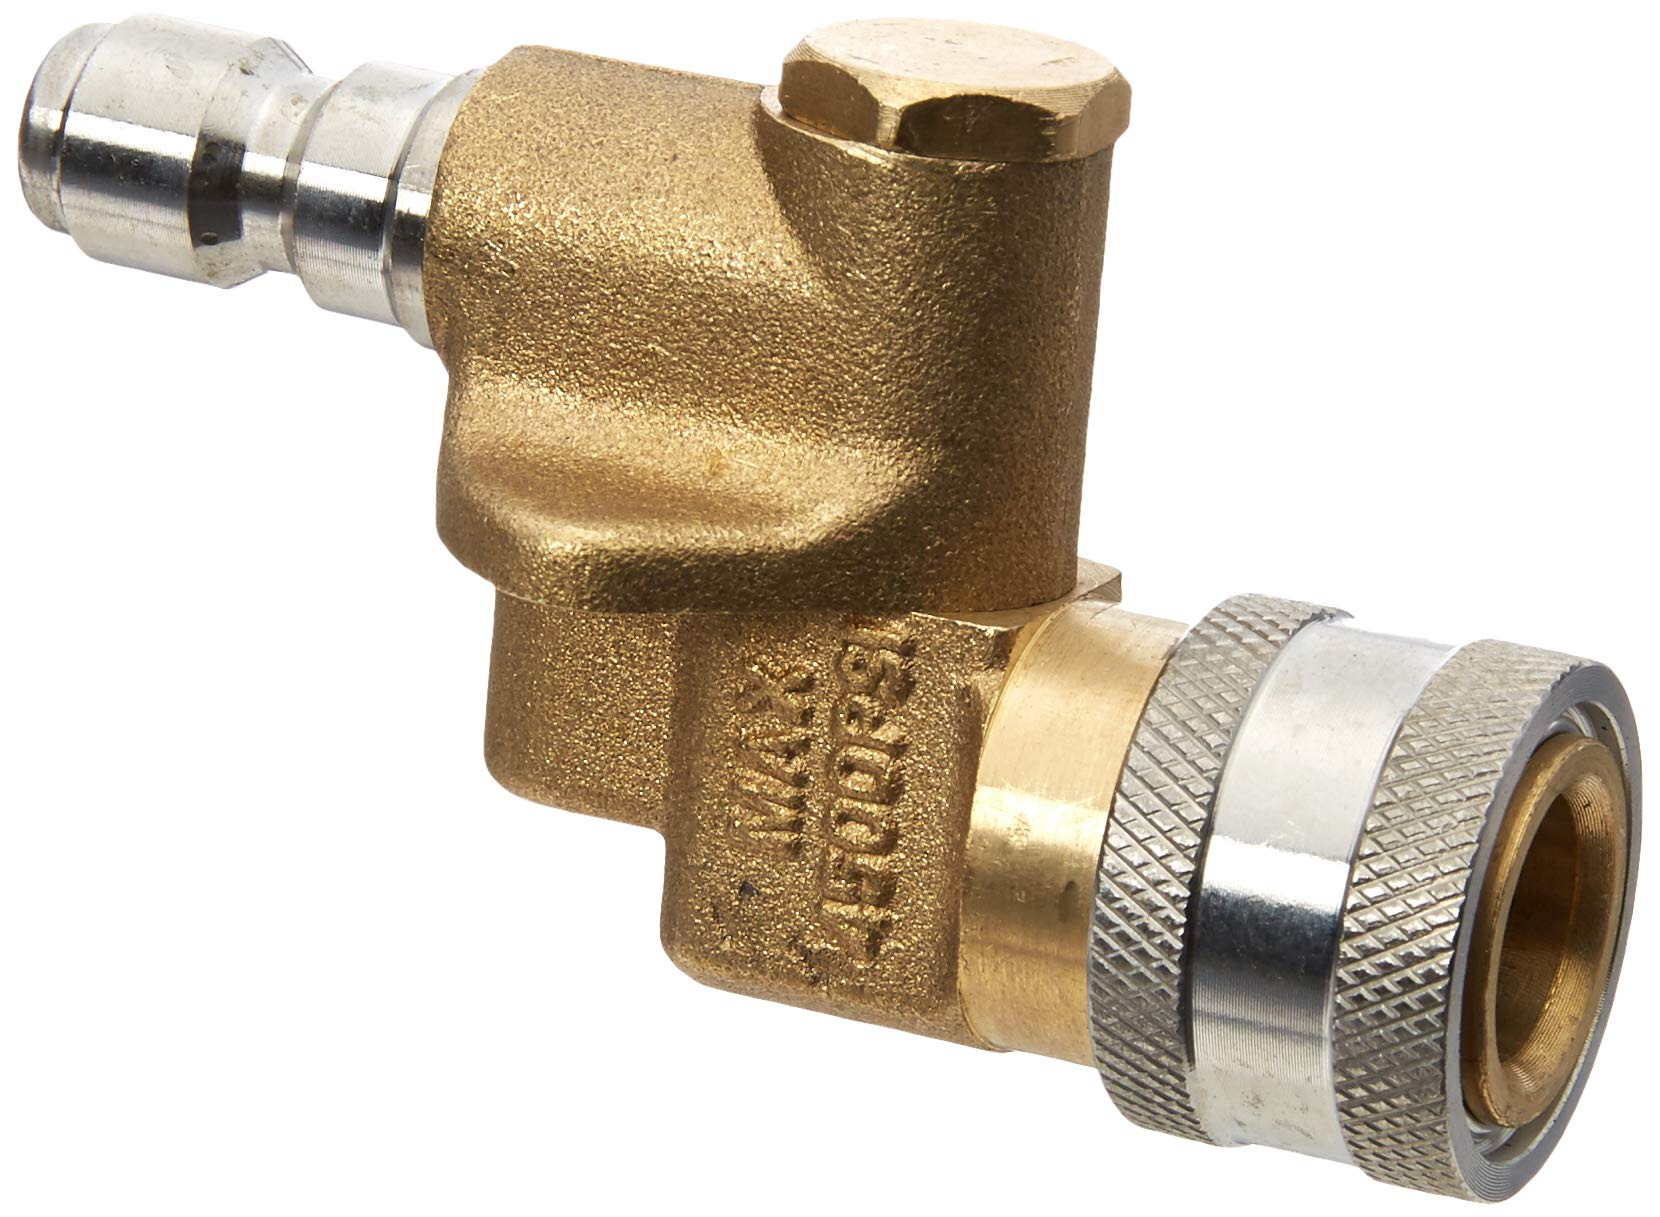 AR North America PW-QC14PIVOT Pressure Washer Pivot Coupler Nozzle Adaptor of 1/4'' & Quick Connect Fits Most Lances, Spray Guns & Accessories, Brass